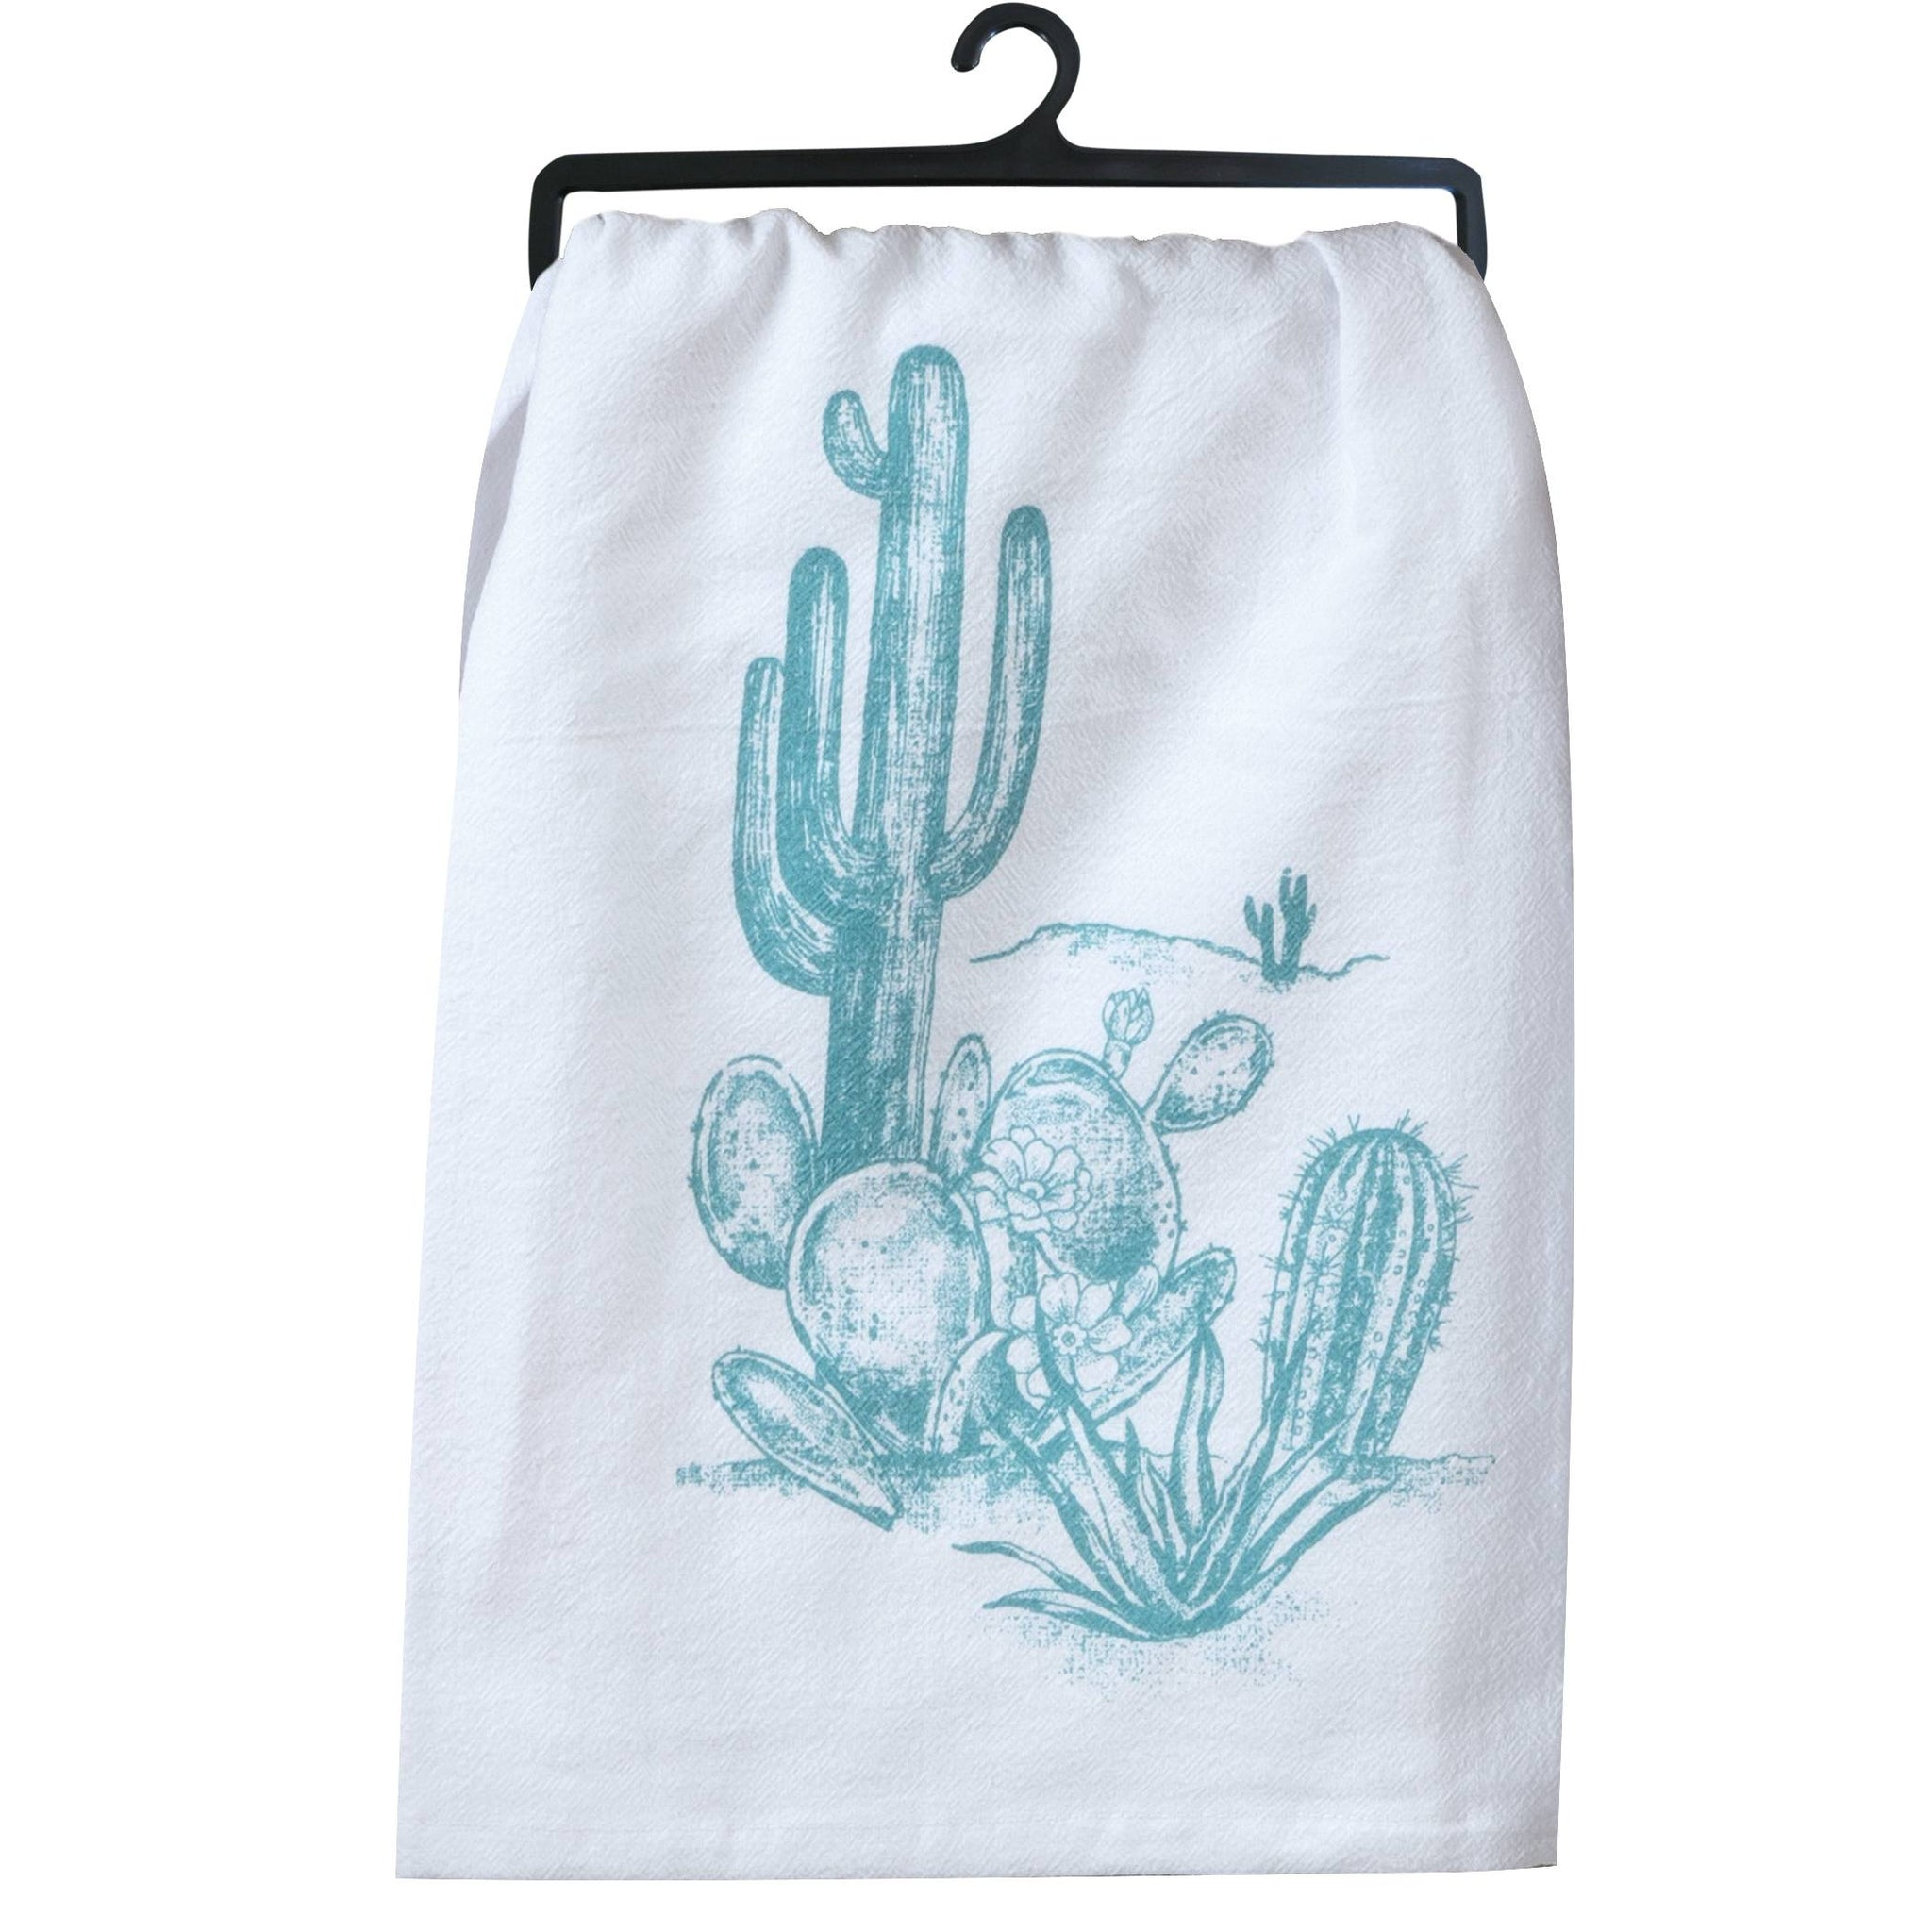 Southwest Craze Cactus Flour Sack Towel